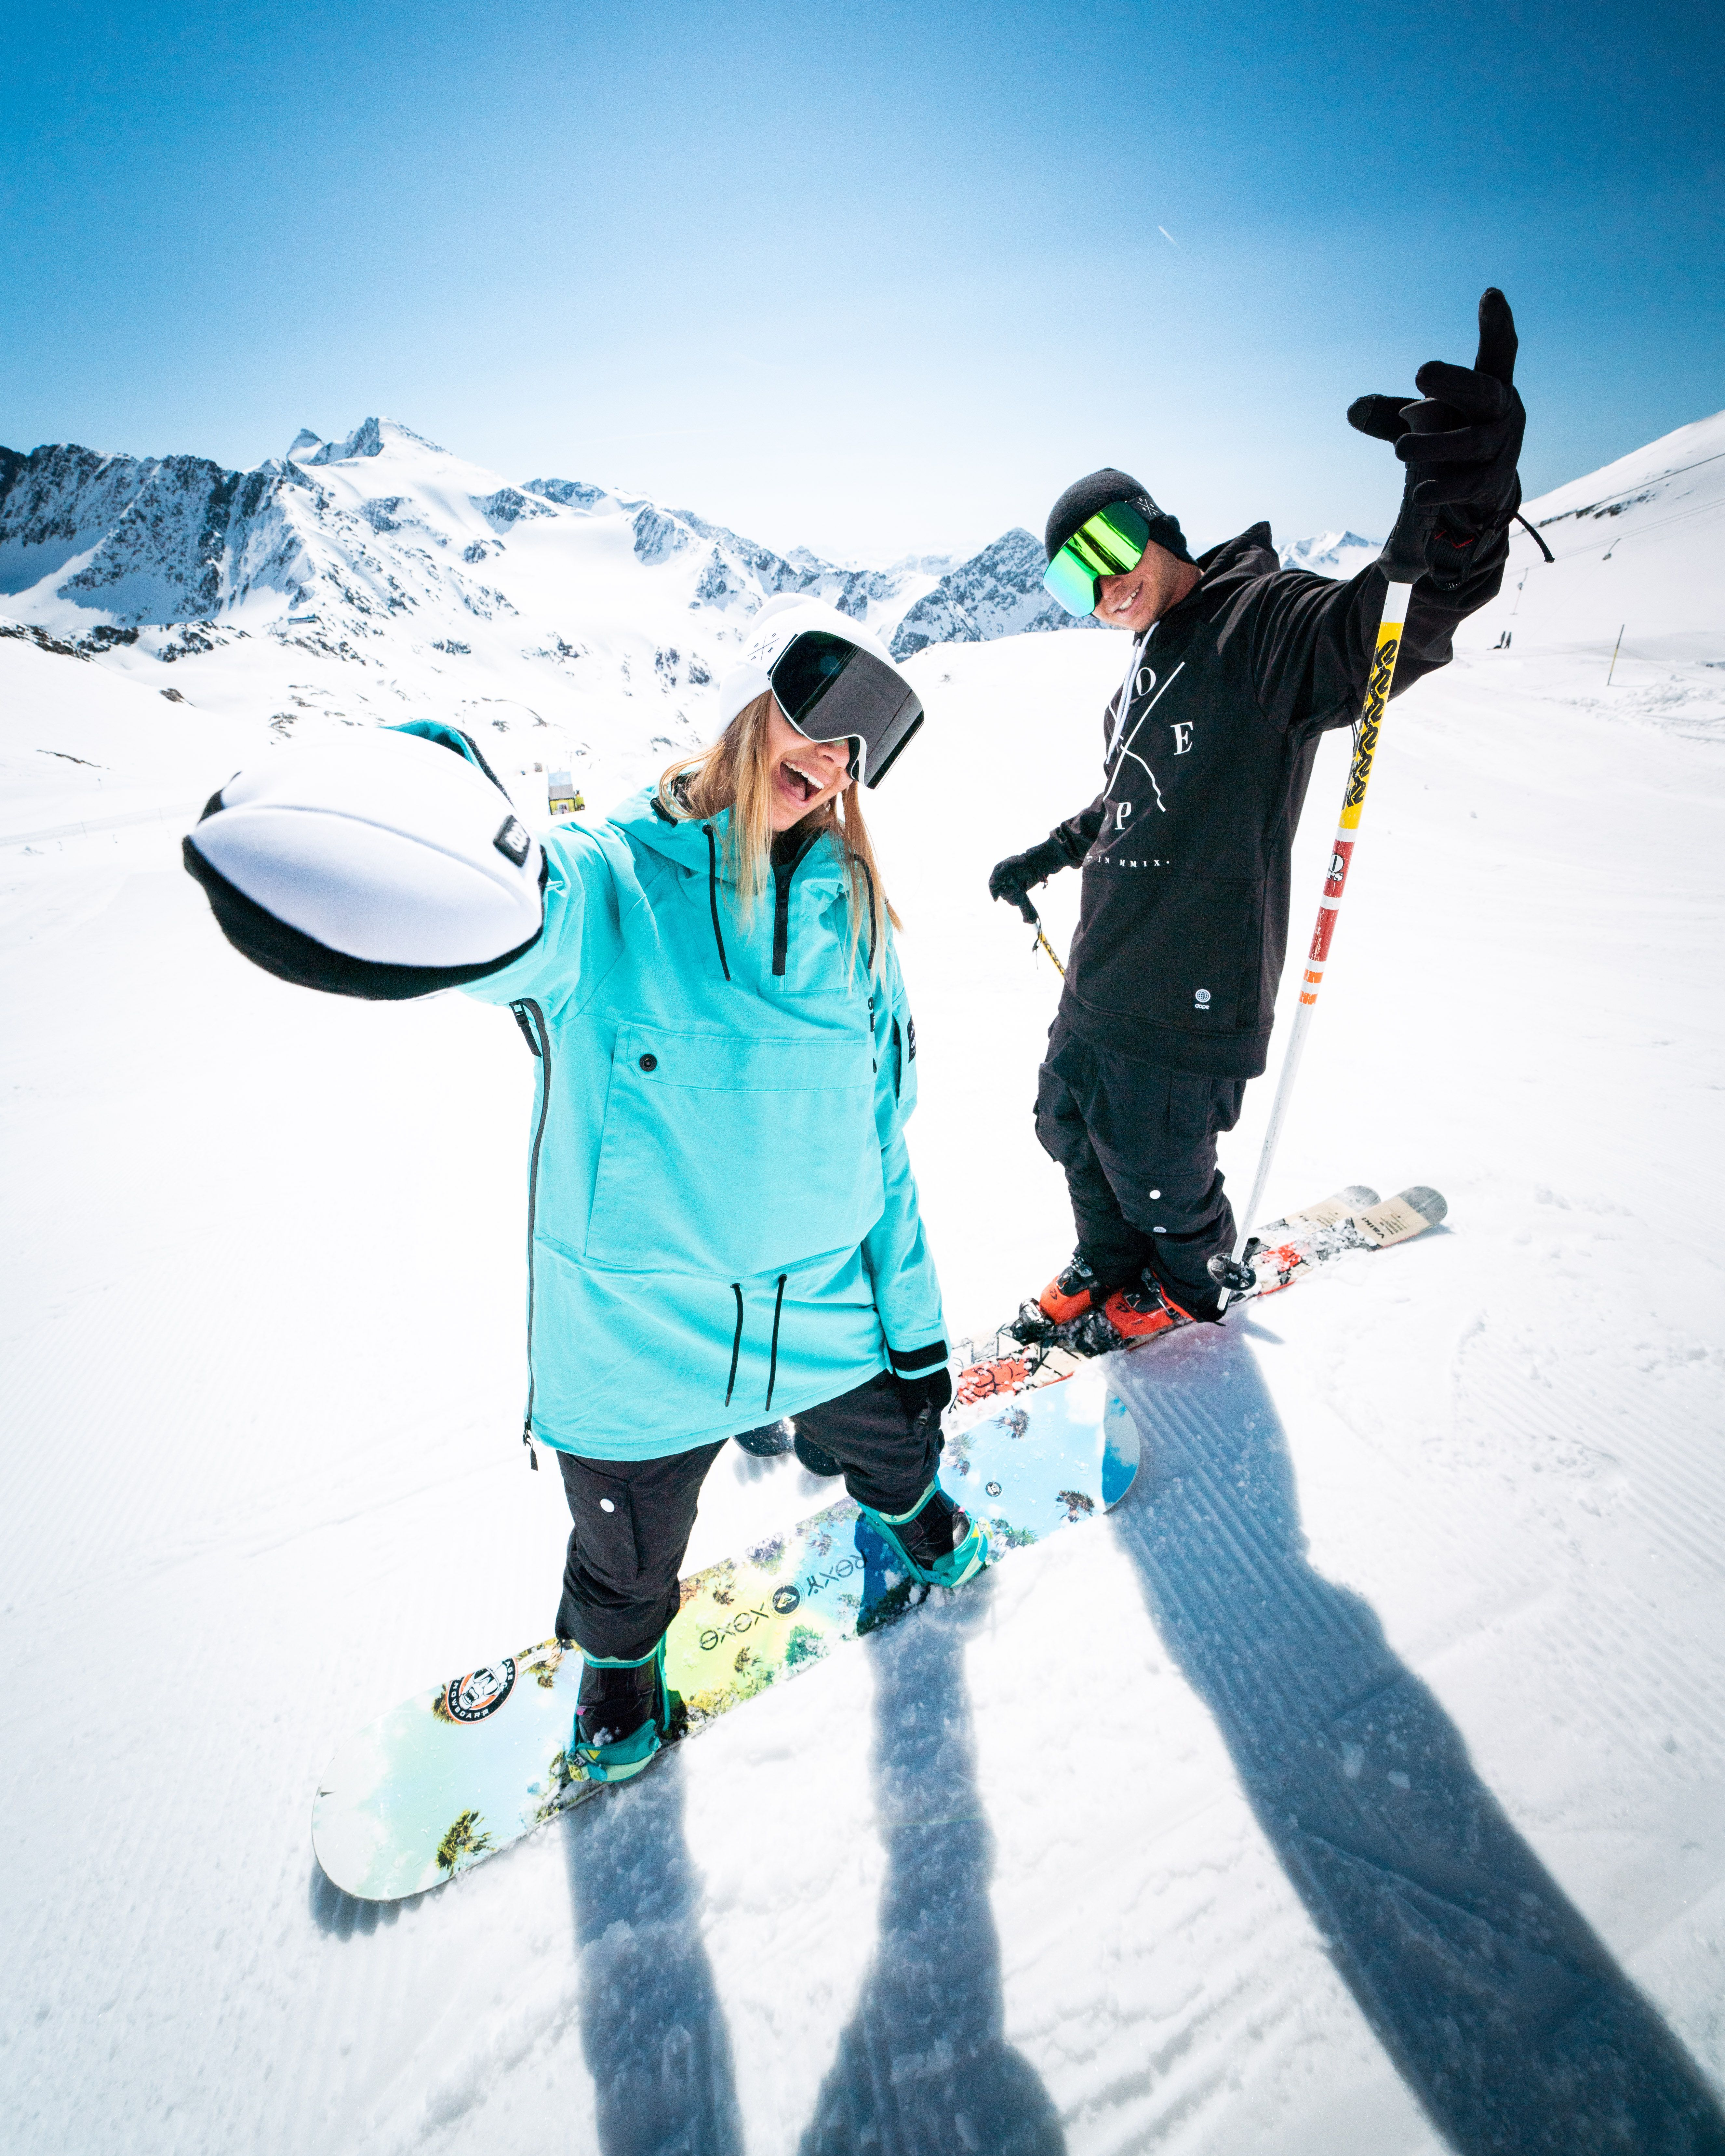 Pin by Kit Lender on Ski Style | Snowboarding style, Skiing